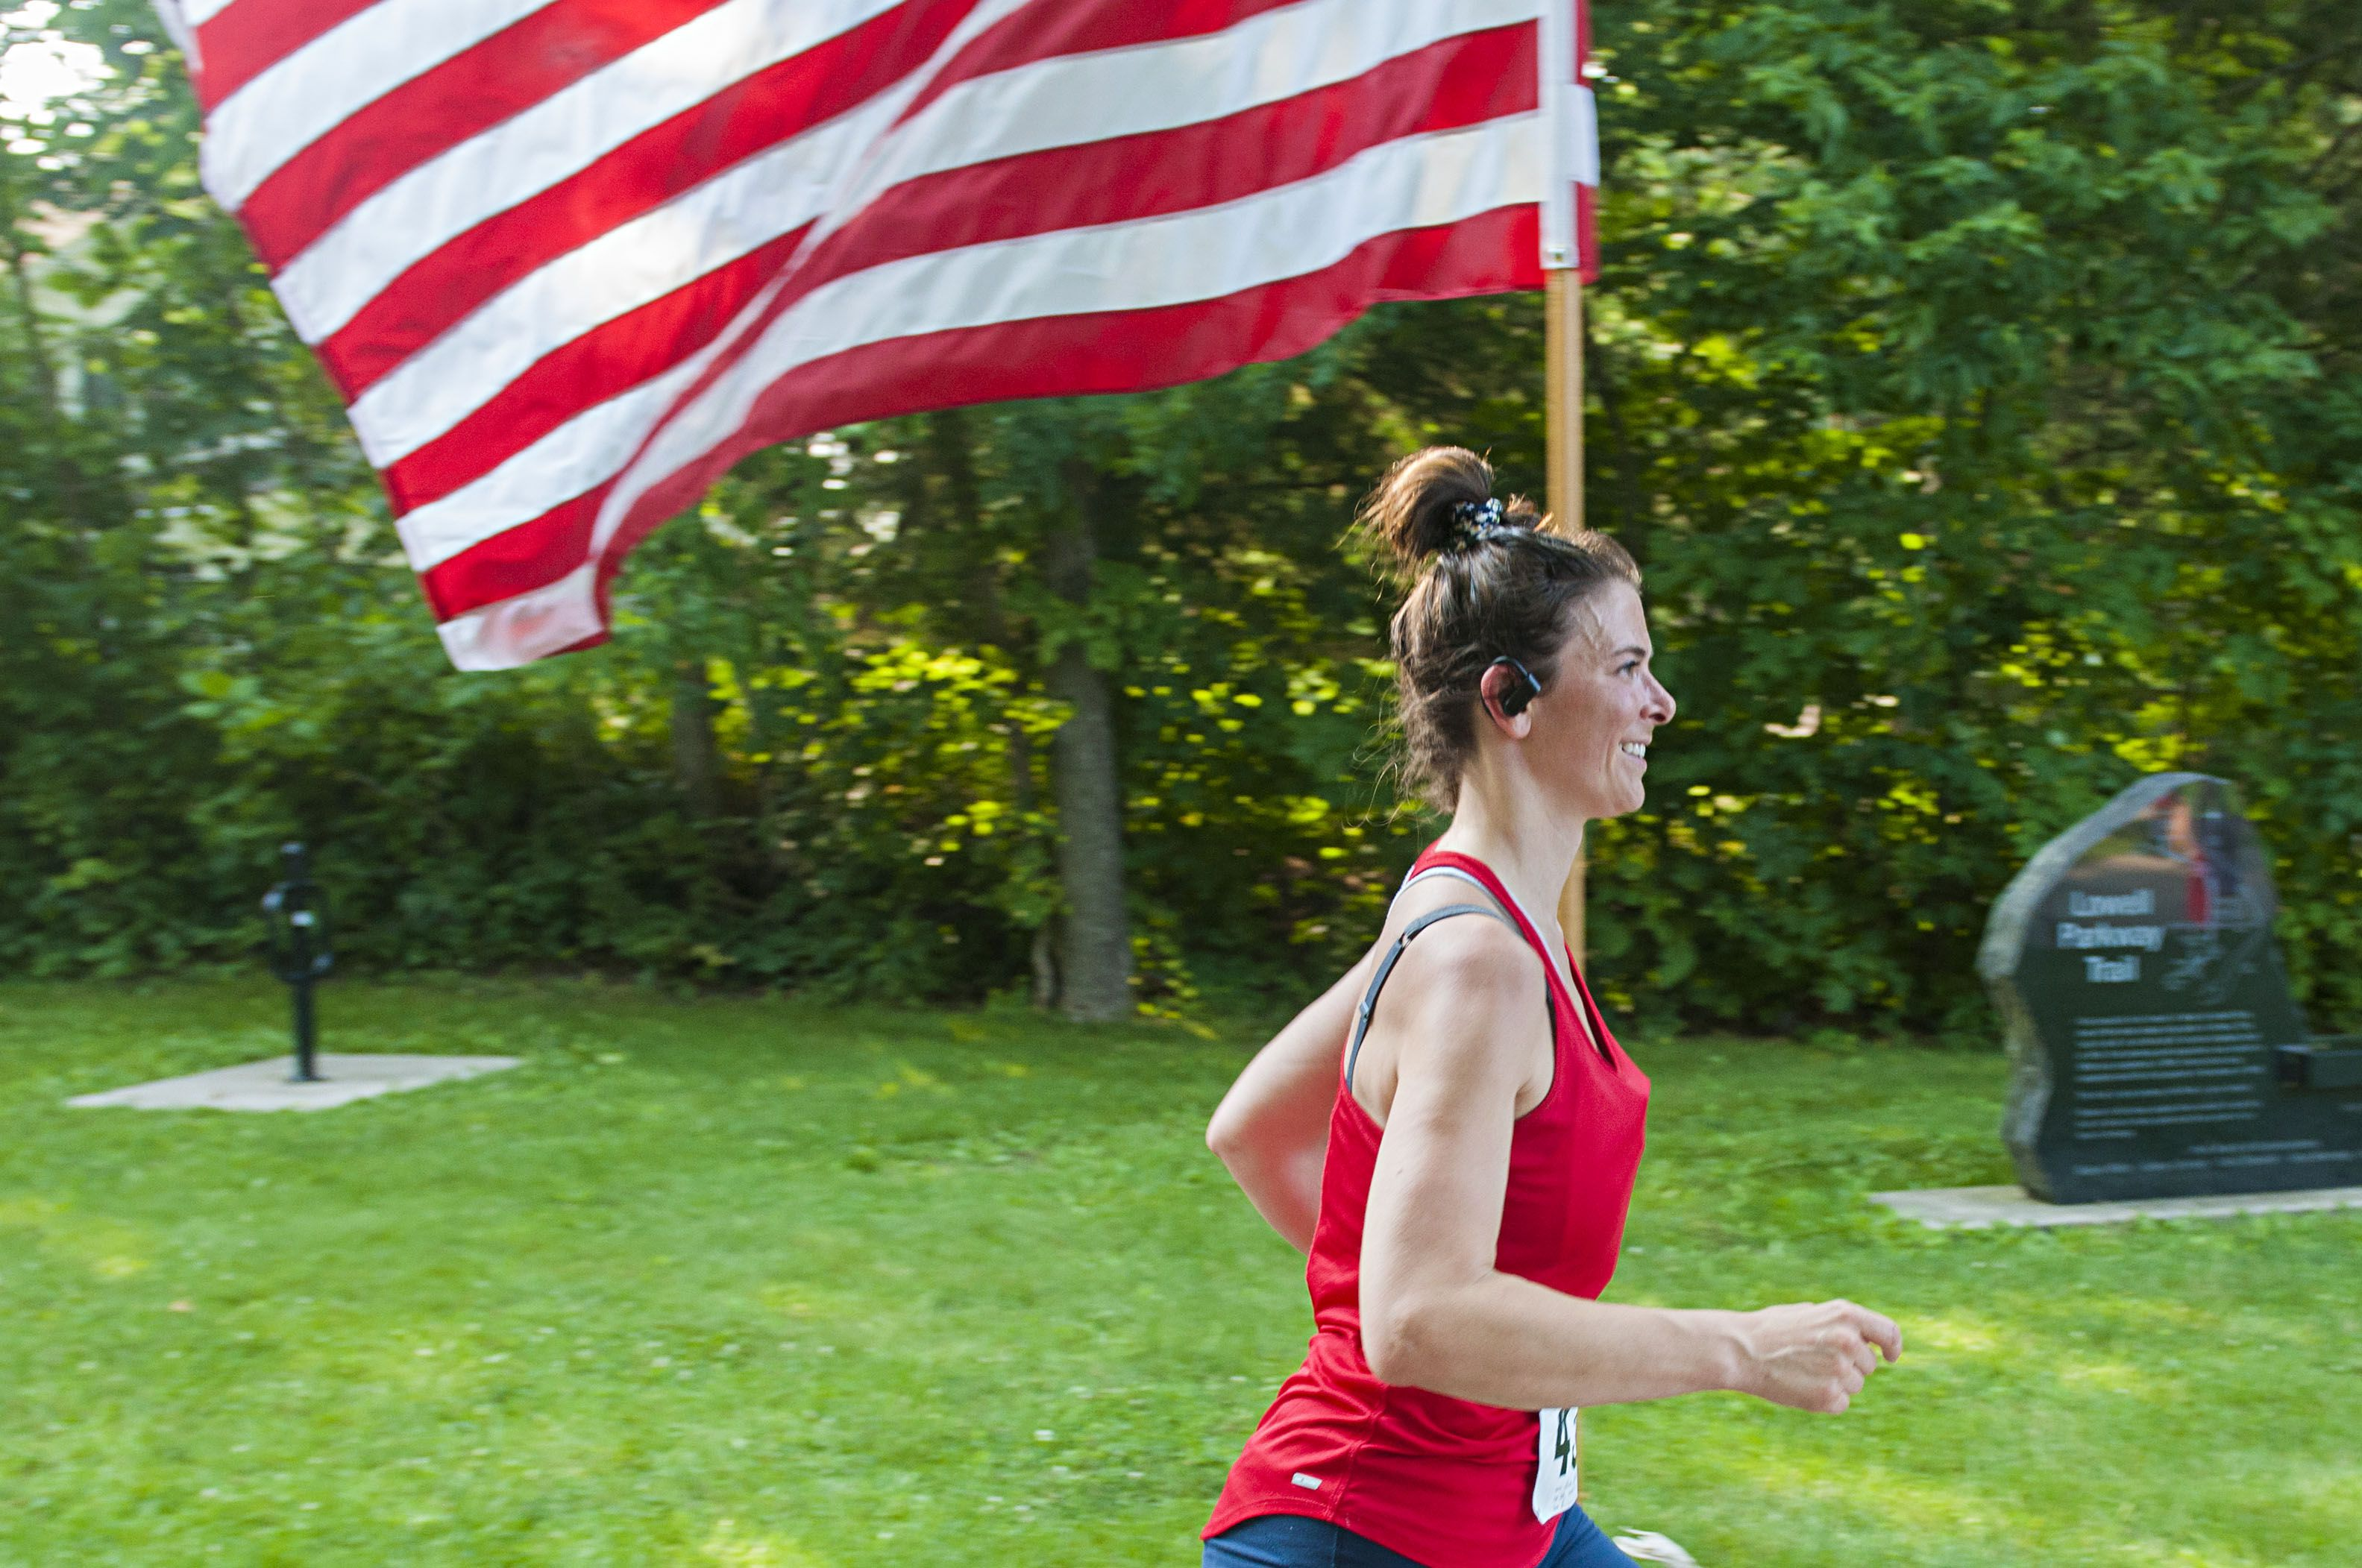 Elise Ulferts-Hume zips by a flag after completing the Reagan Run.